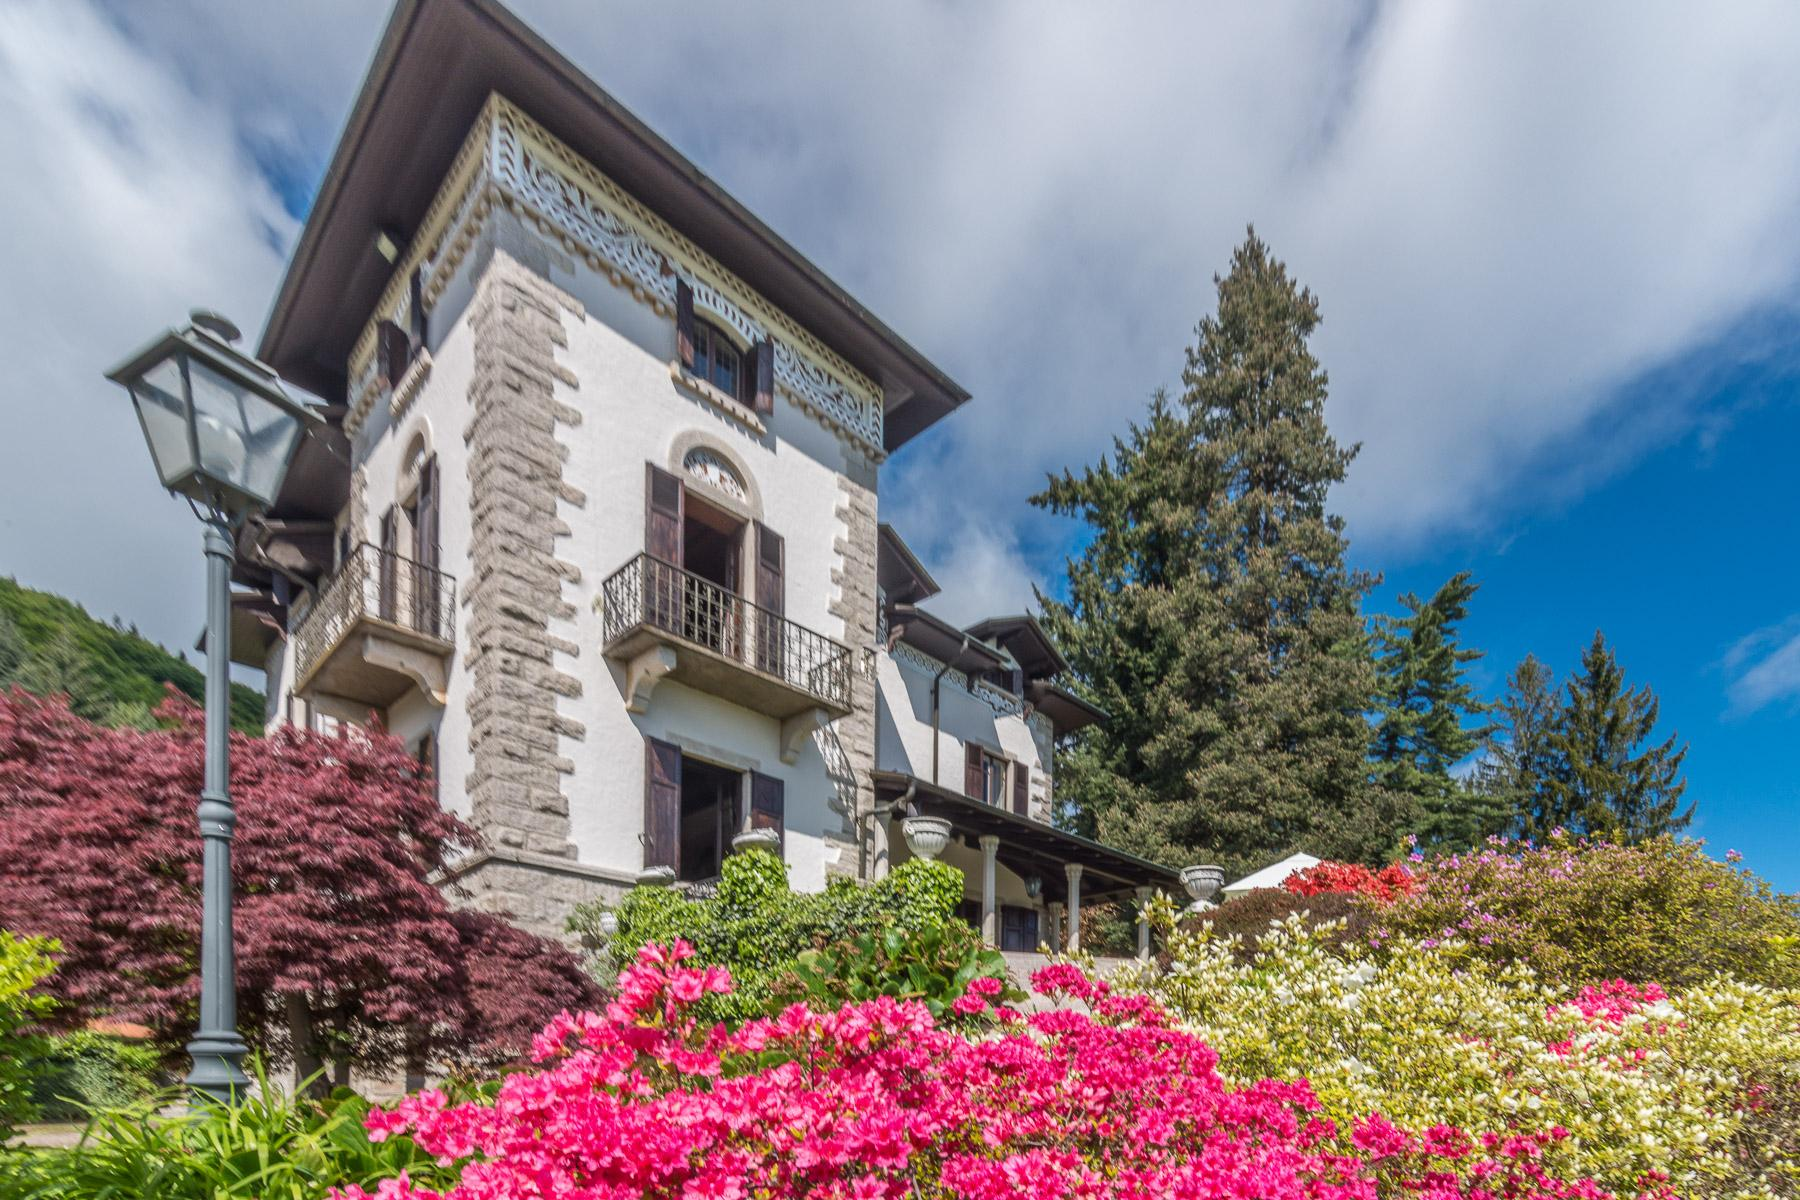 Charming historic villa on the hills of Stresa - 3